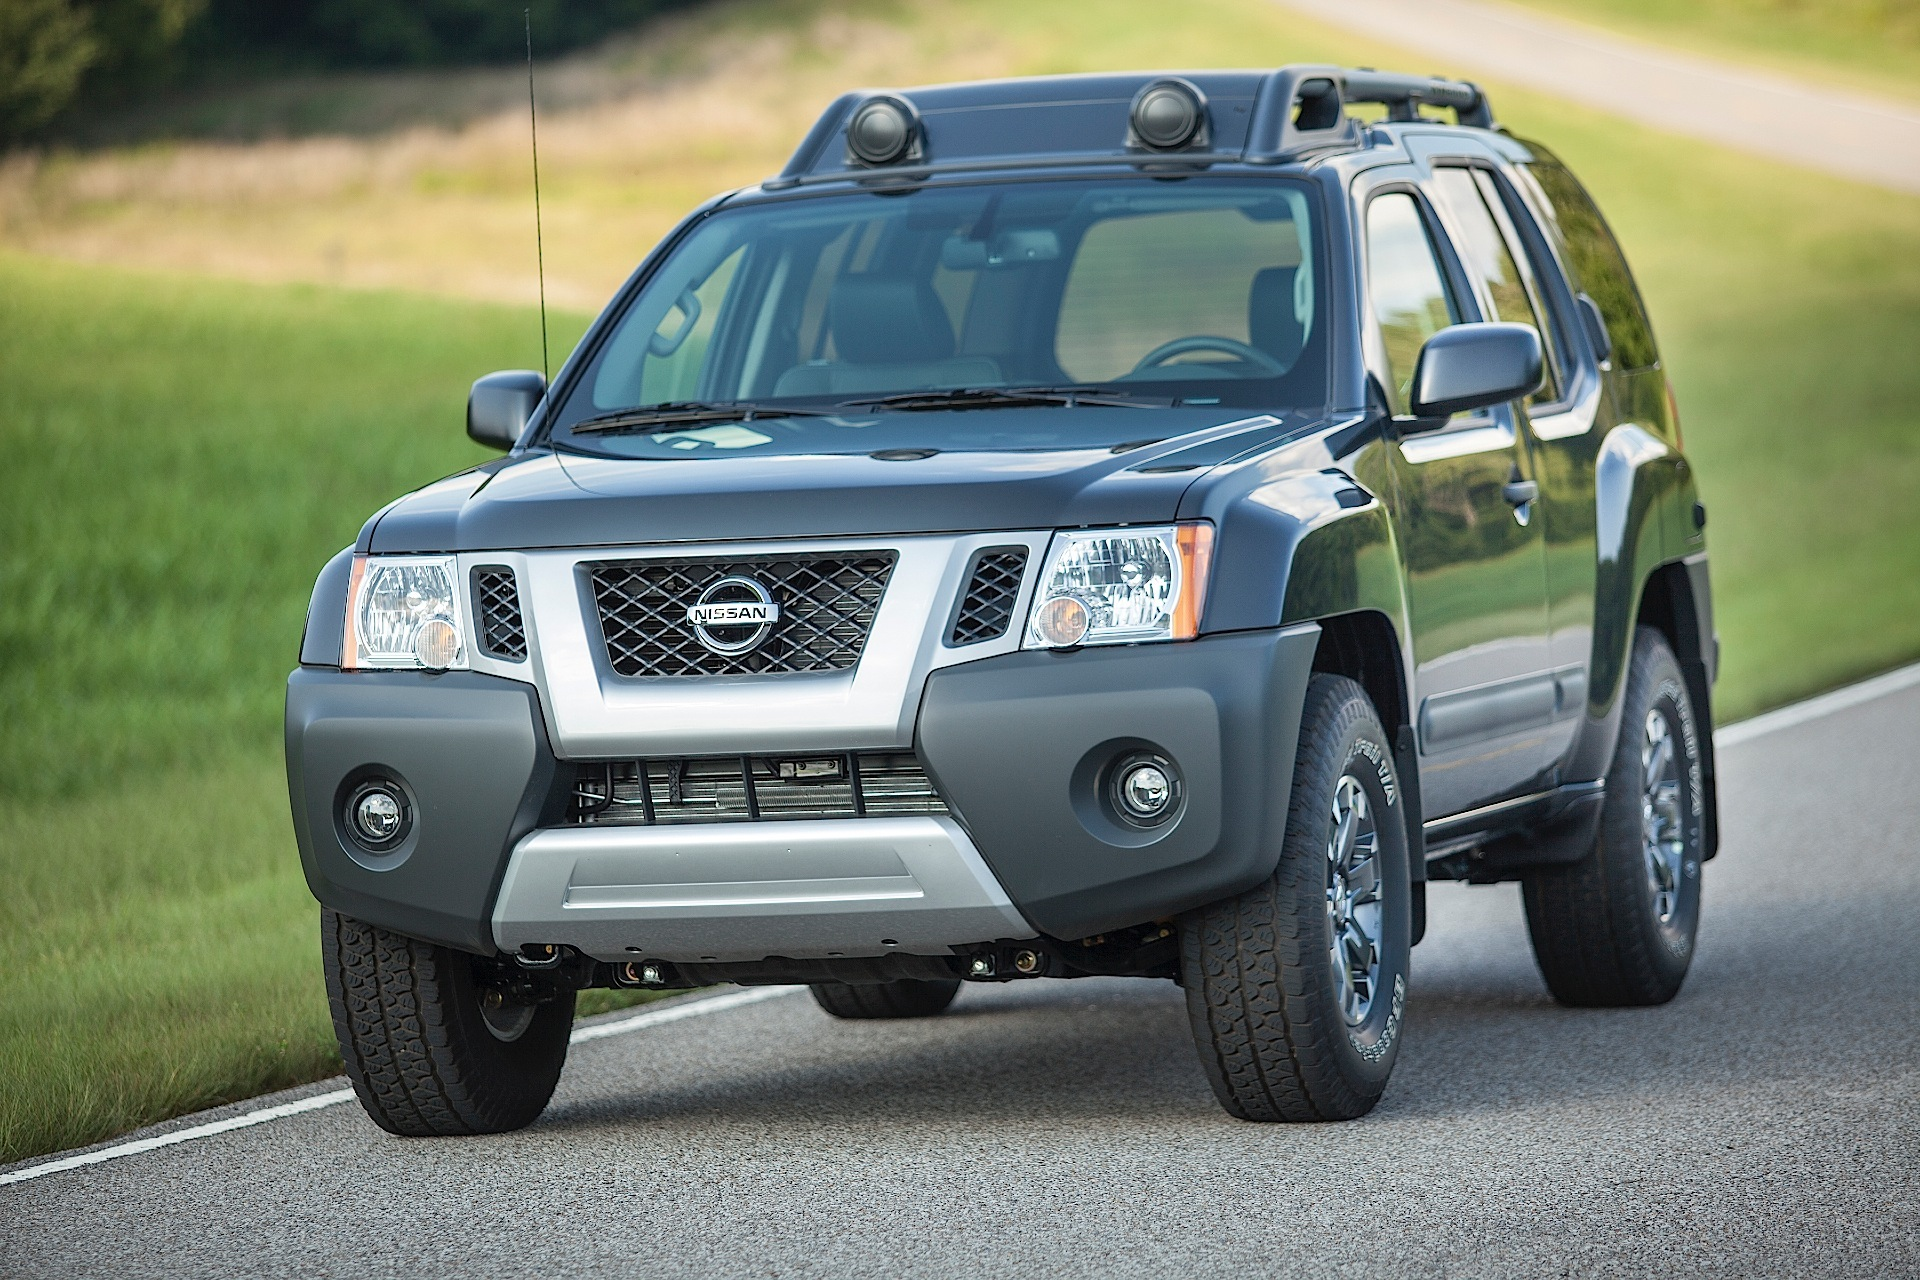 nissan xterra specs 2009 2010 2011 2012 2013 2014 2015 autoevolution. Black Bedroom Furniture Sets. Home Design Ideas